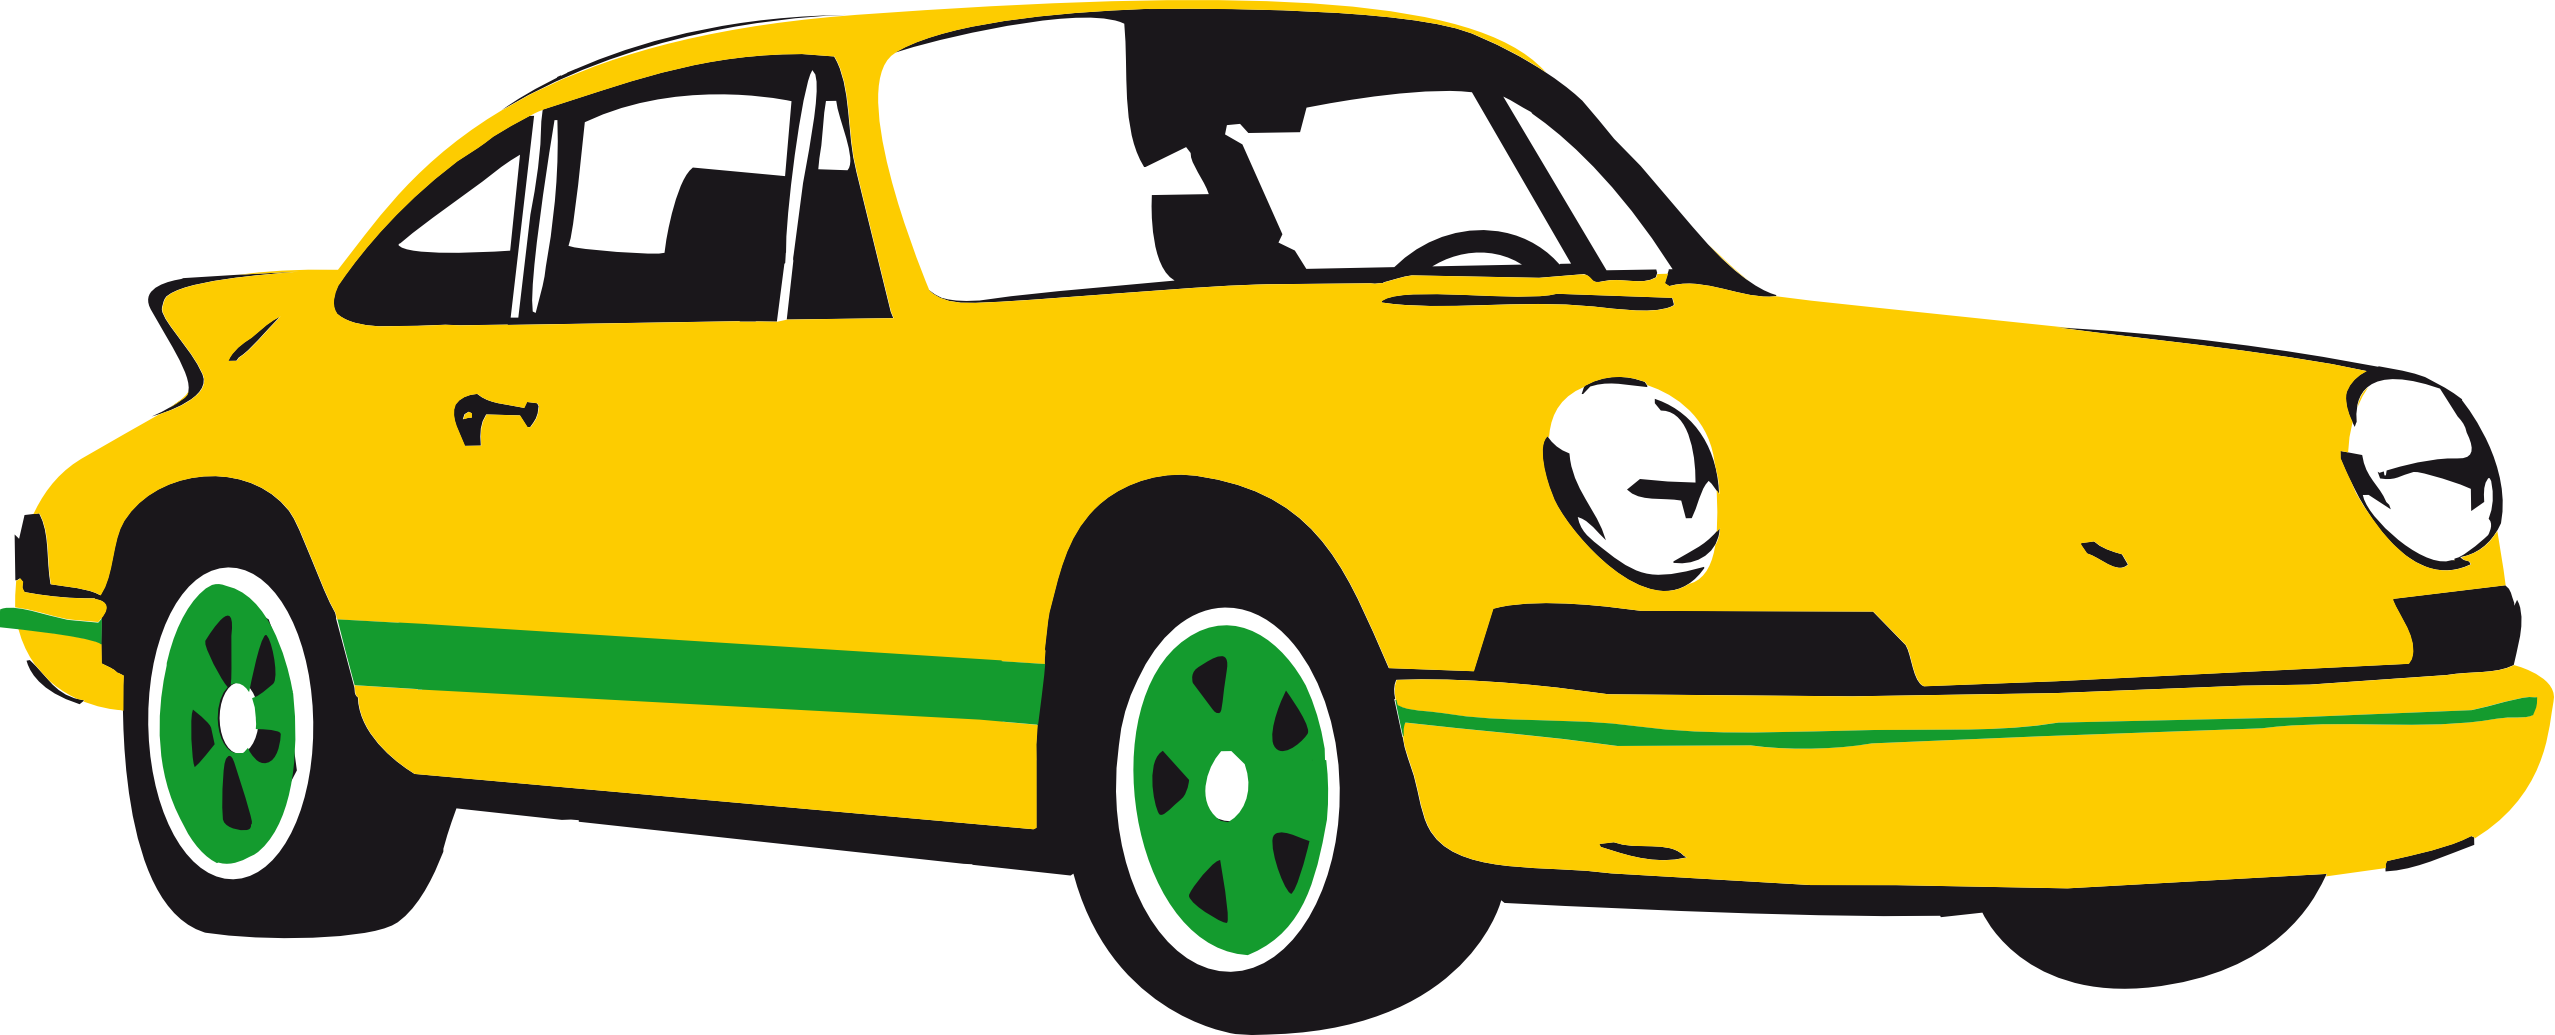 Car Clipart Top View | Clipart Panda - Free Clipart Images